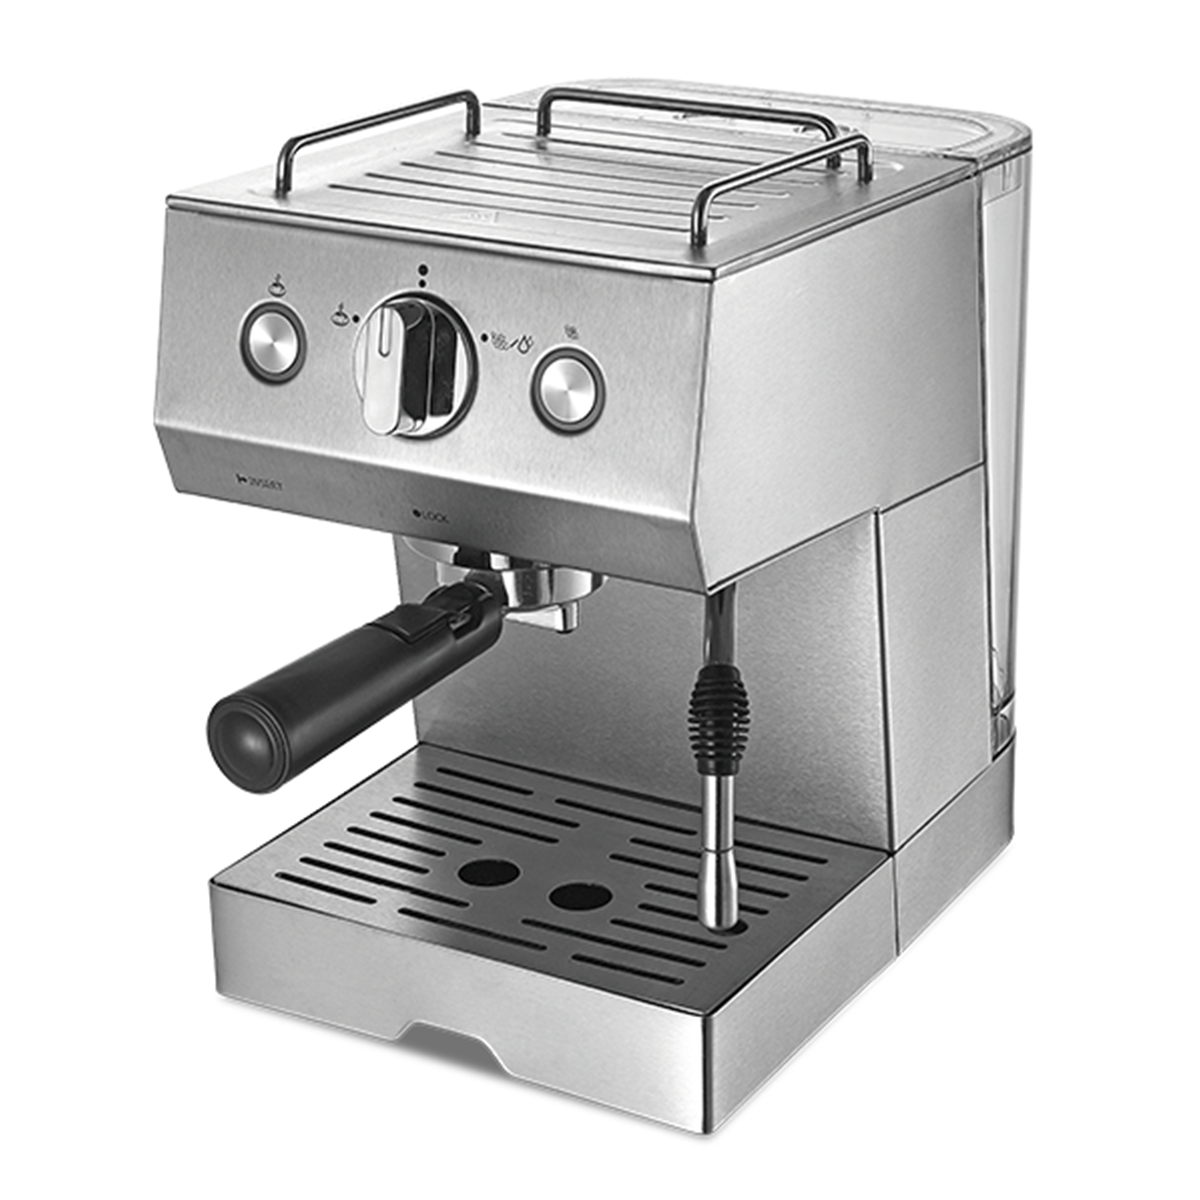 Espresso Machine with Milk Frother